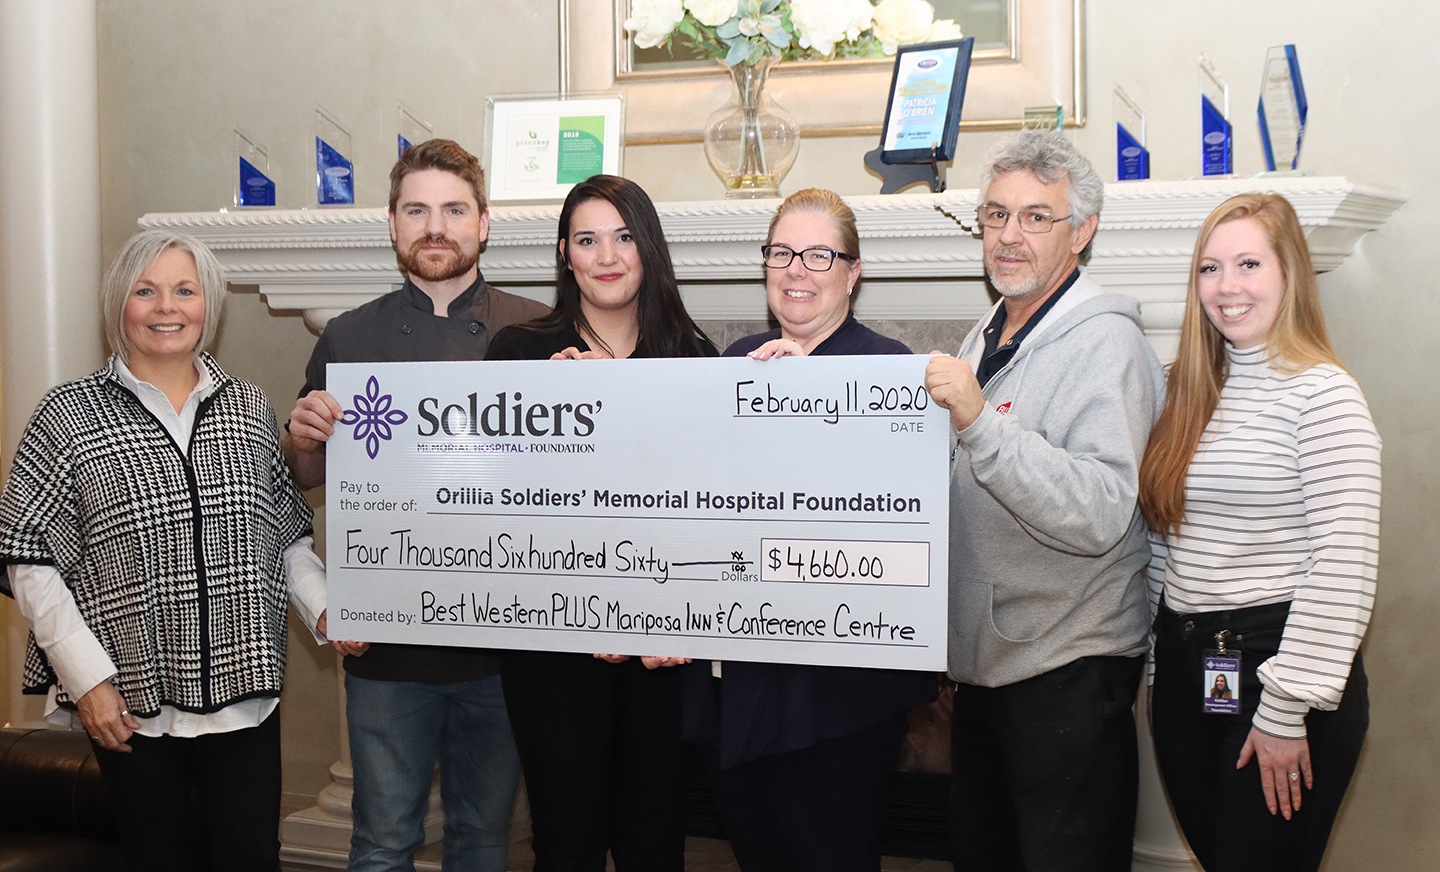 Organizers of Best Western PLUS Mariposa Inn & Conference Centre's Margaritaville New Year's Eve Party present a cheque for $4,660 to the Orillia Soldiers' Memorial Hospital Foundation. (L-R) Lisa Wanamaker, OSMH Foundation, Paul Laforet, Executive Chef, The Grape and Olive Wine & Martini Bistro, Danielle Foster, Housekeeping Manager, Andrea Sullivan, Assistant General Manager, Don Bassie, Maintenance Manager and Kaitlyn St. Pierre, OSMH Foundation.